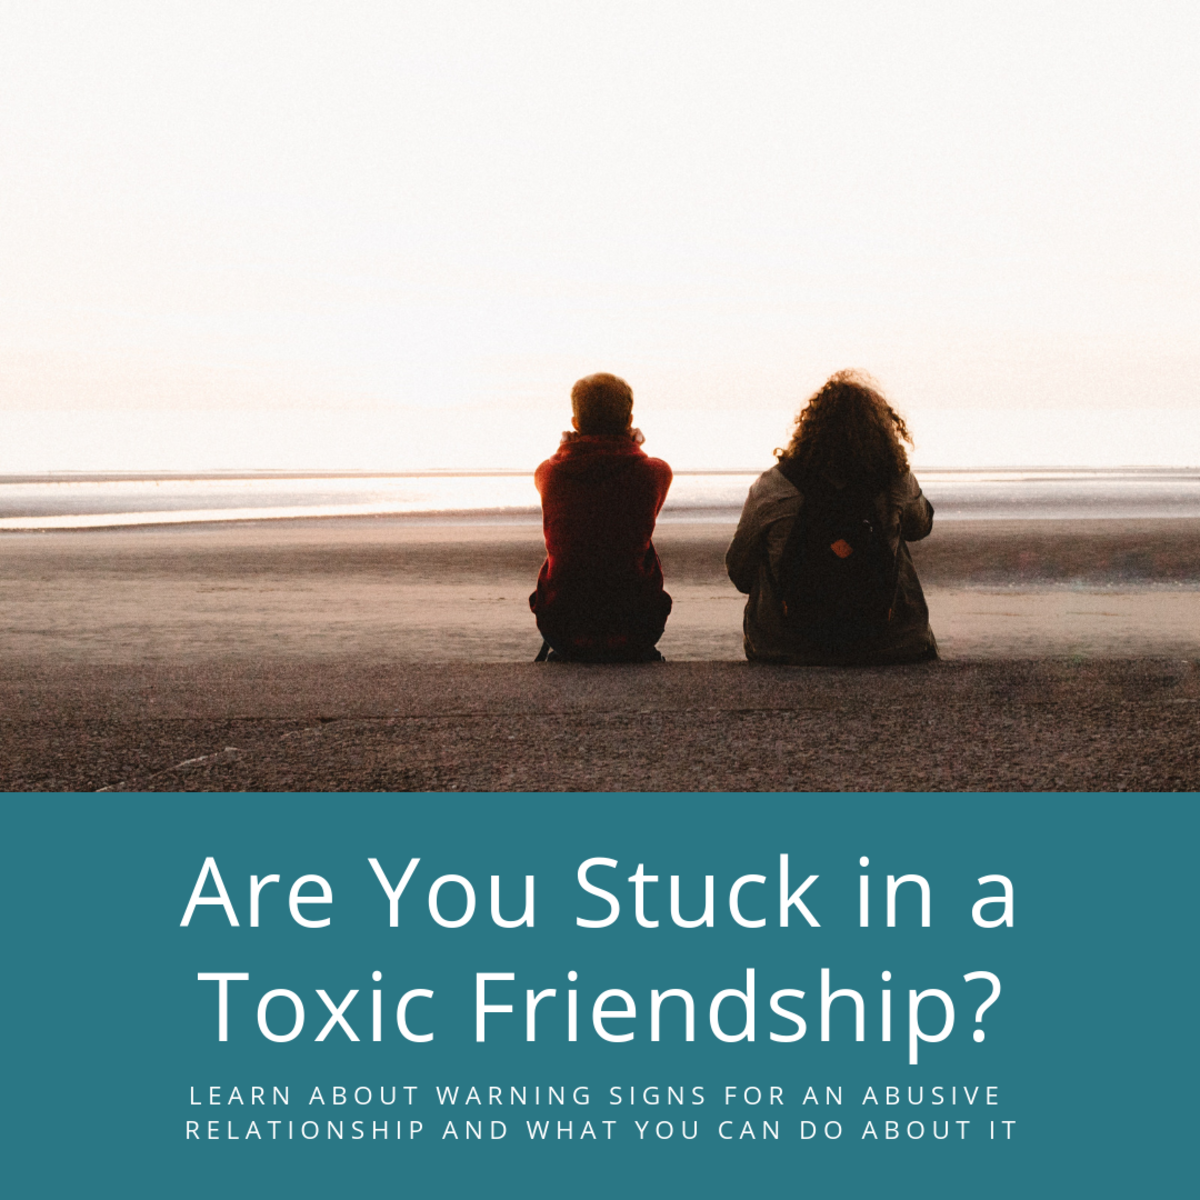 Does your friend ignore your emotions and make you feel bad about yourself? Learn how to get out of a toxic relationship.